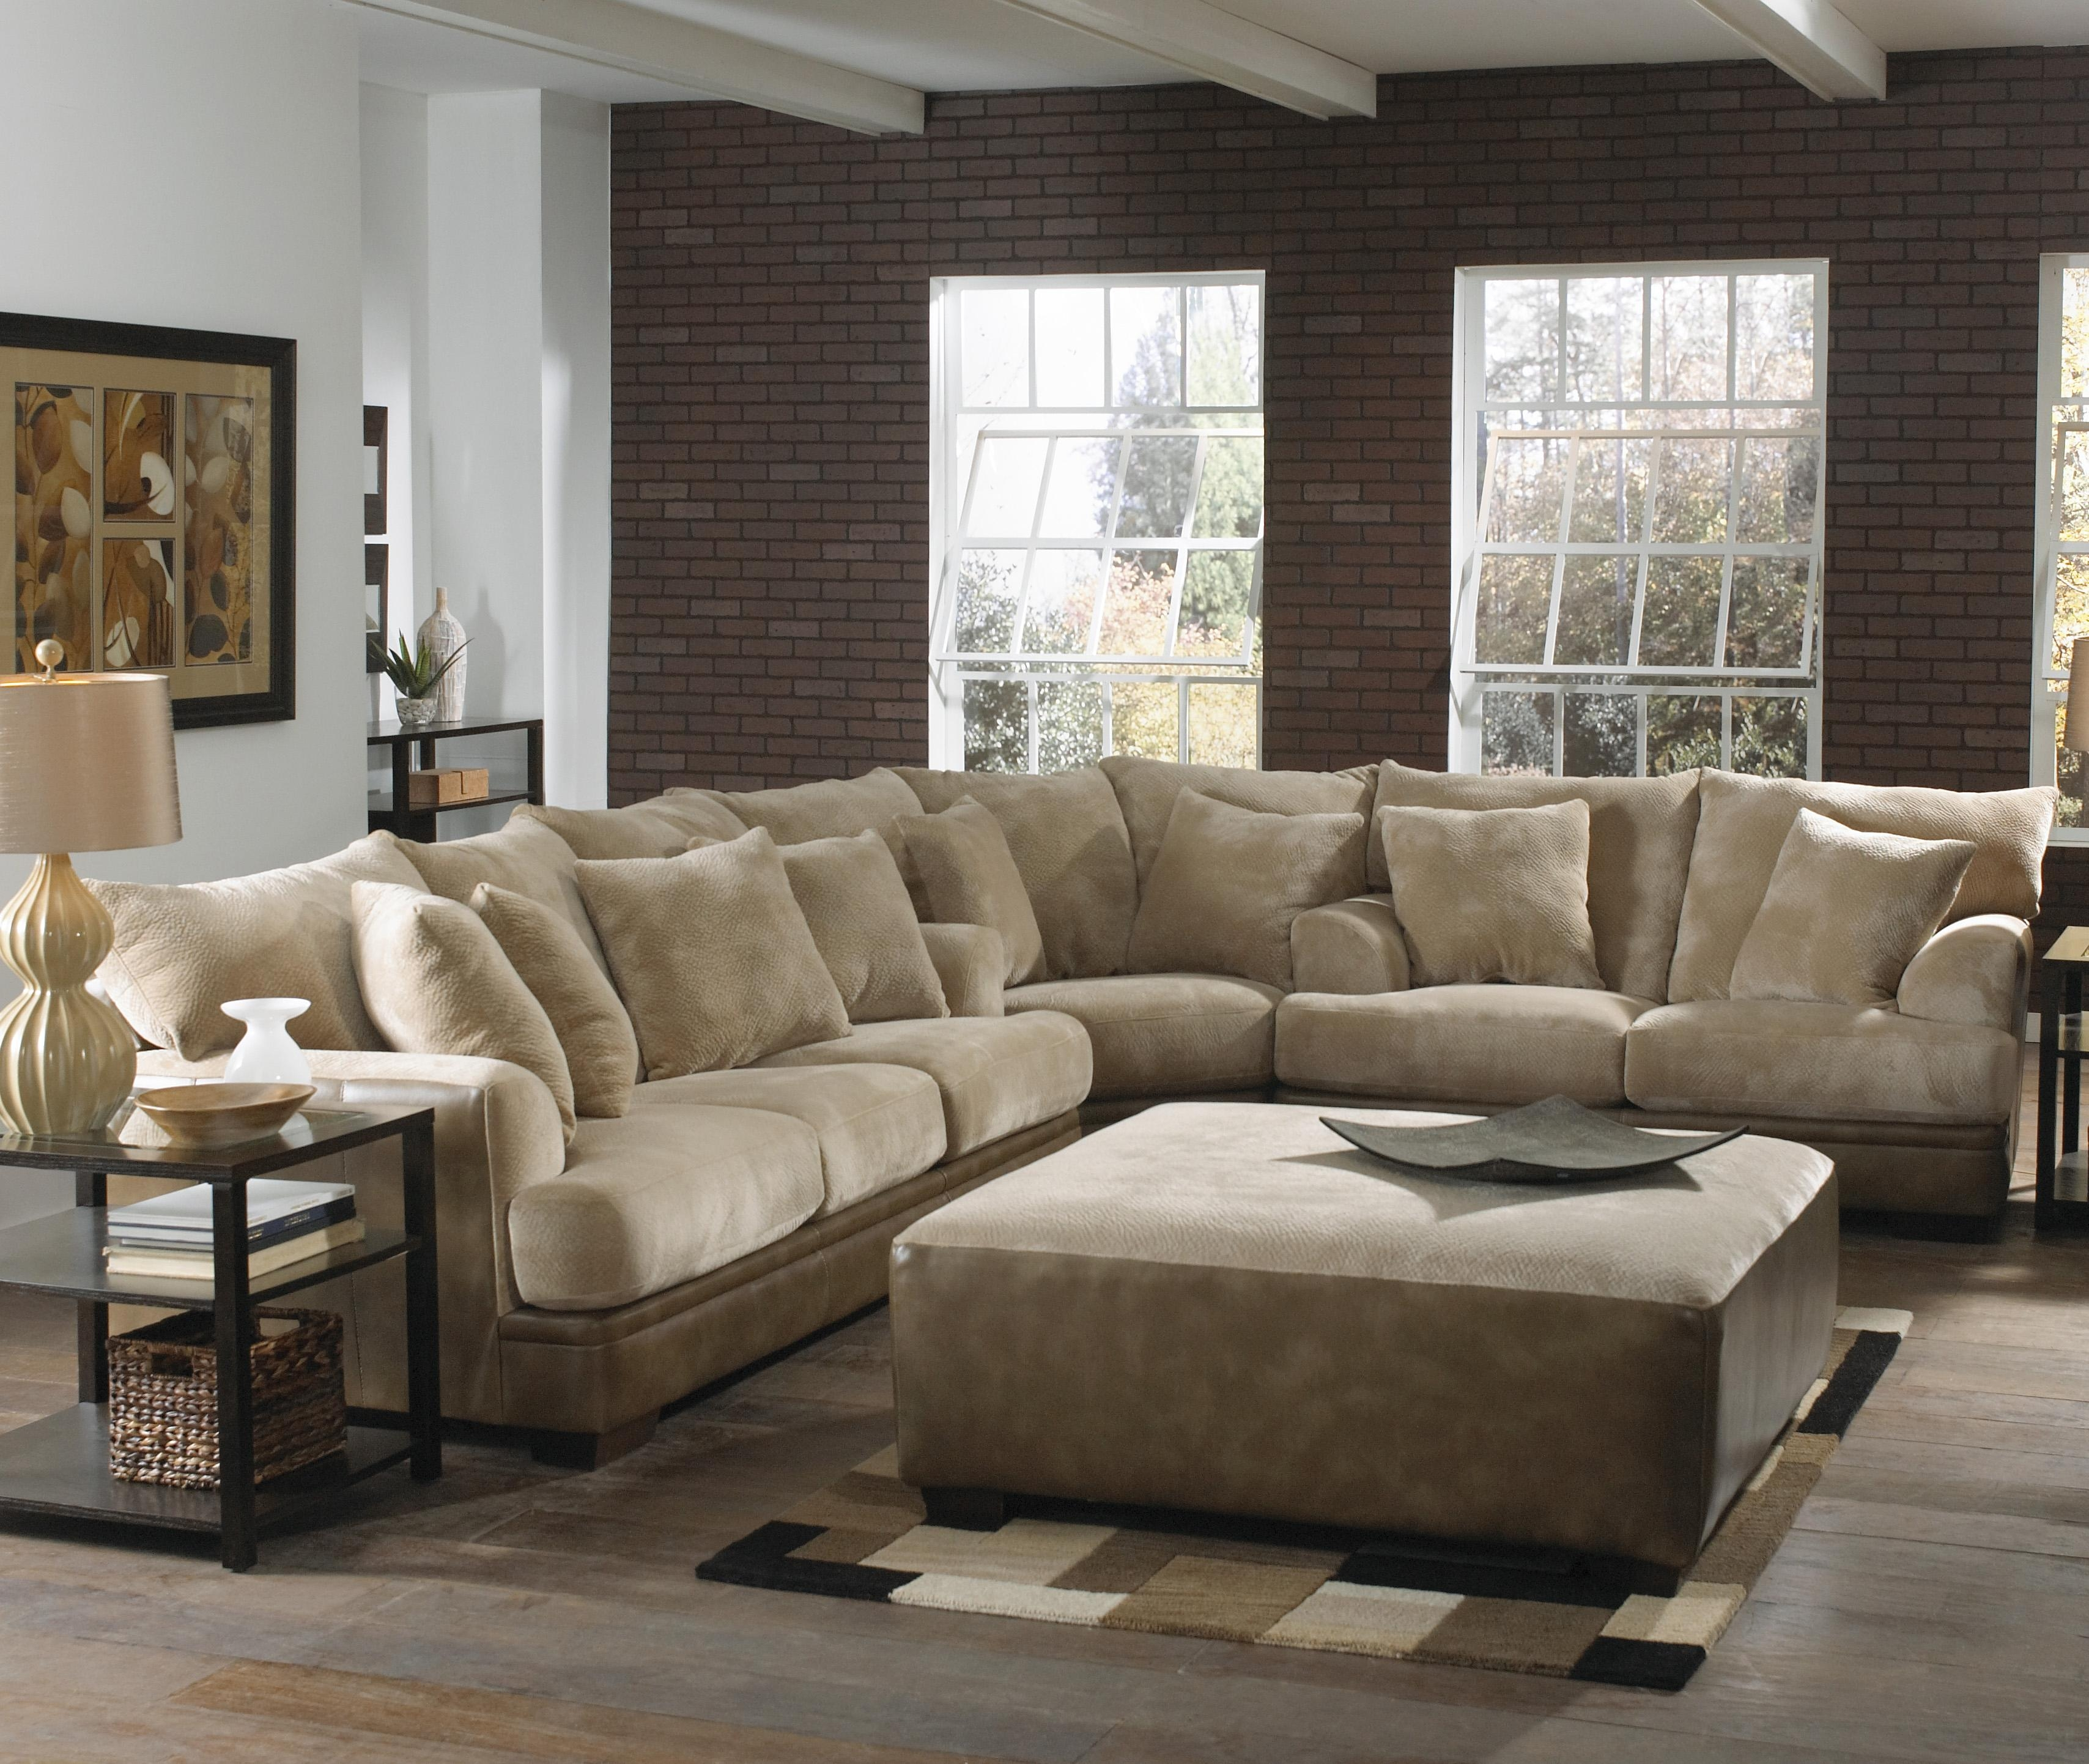 Extra Wide Sectional Sofa Cleanupflorida Regarding Extra Wide Sectional Sofas (#7 of 12)